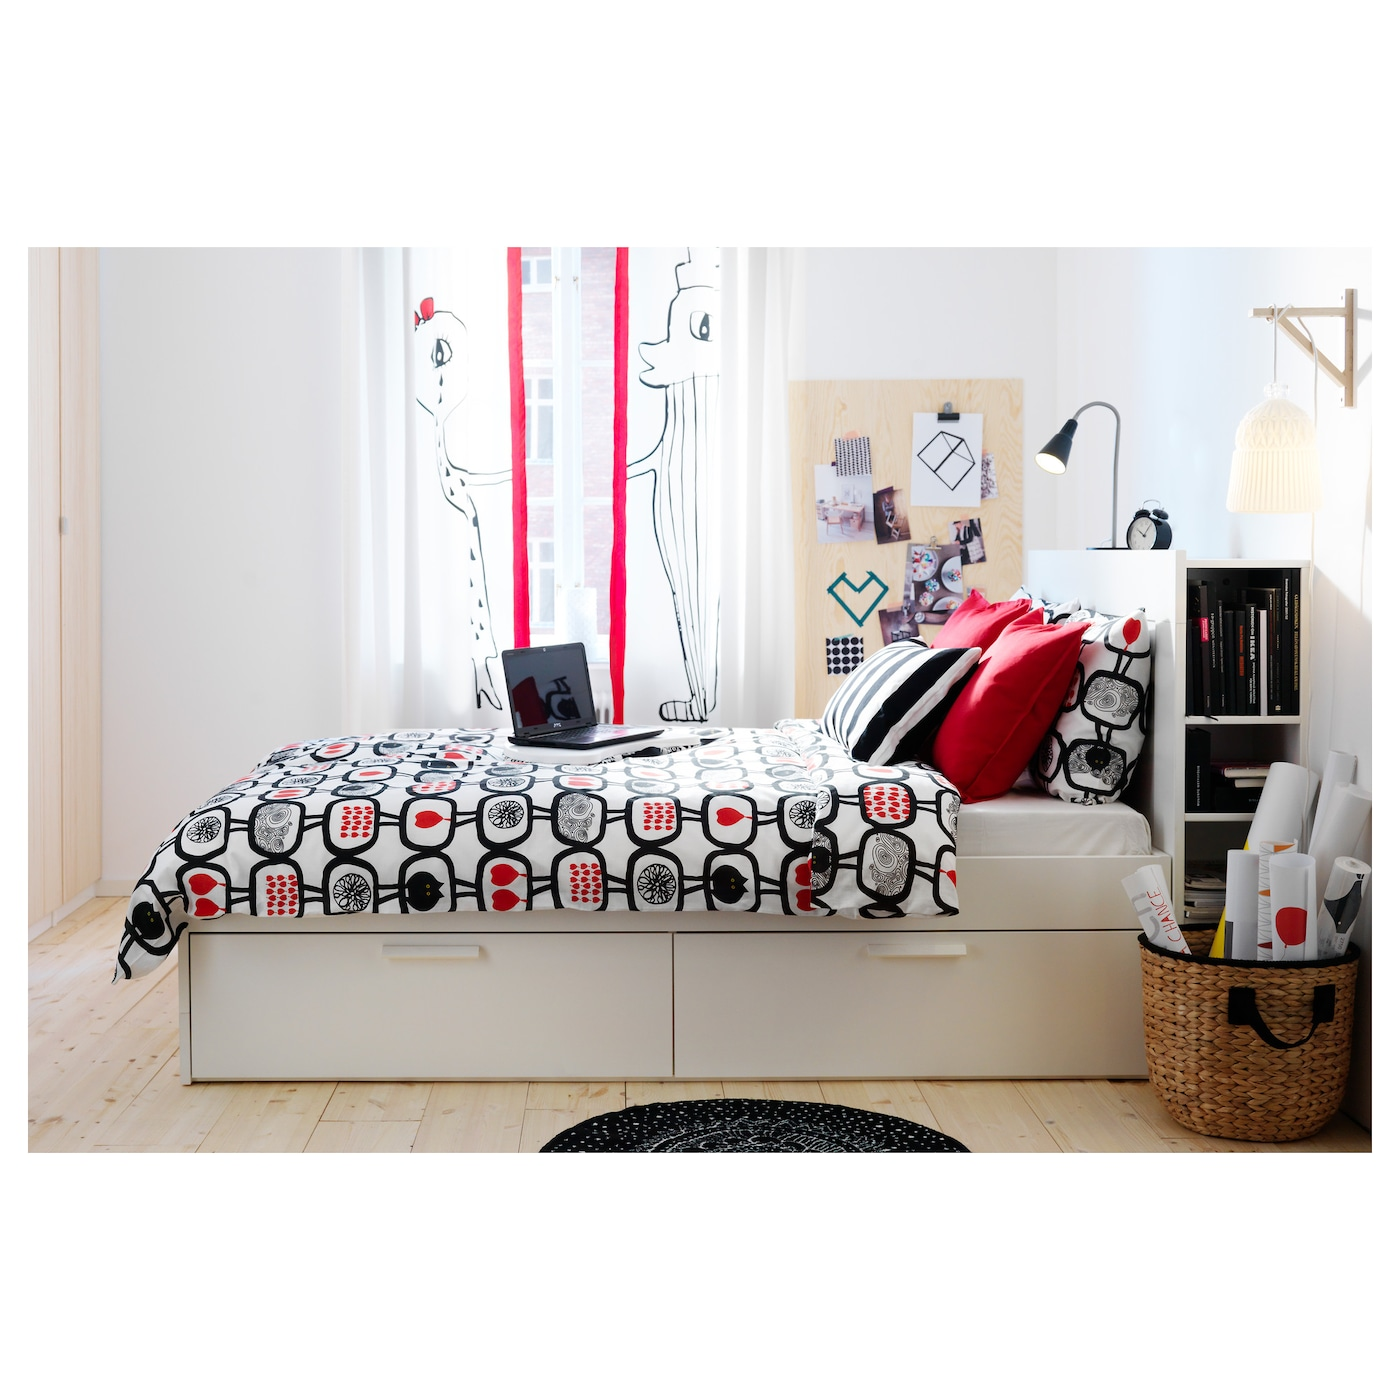 brimnes cadre de lit rangement t te de lit blanc 140 x 200 cm ikea. Black Bedroom Furniture Sets. Home Design Ideas